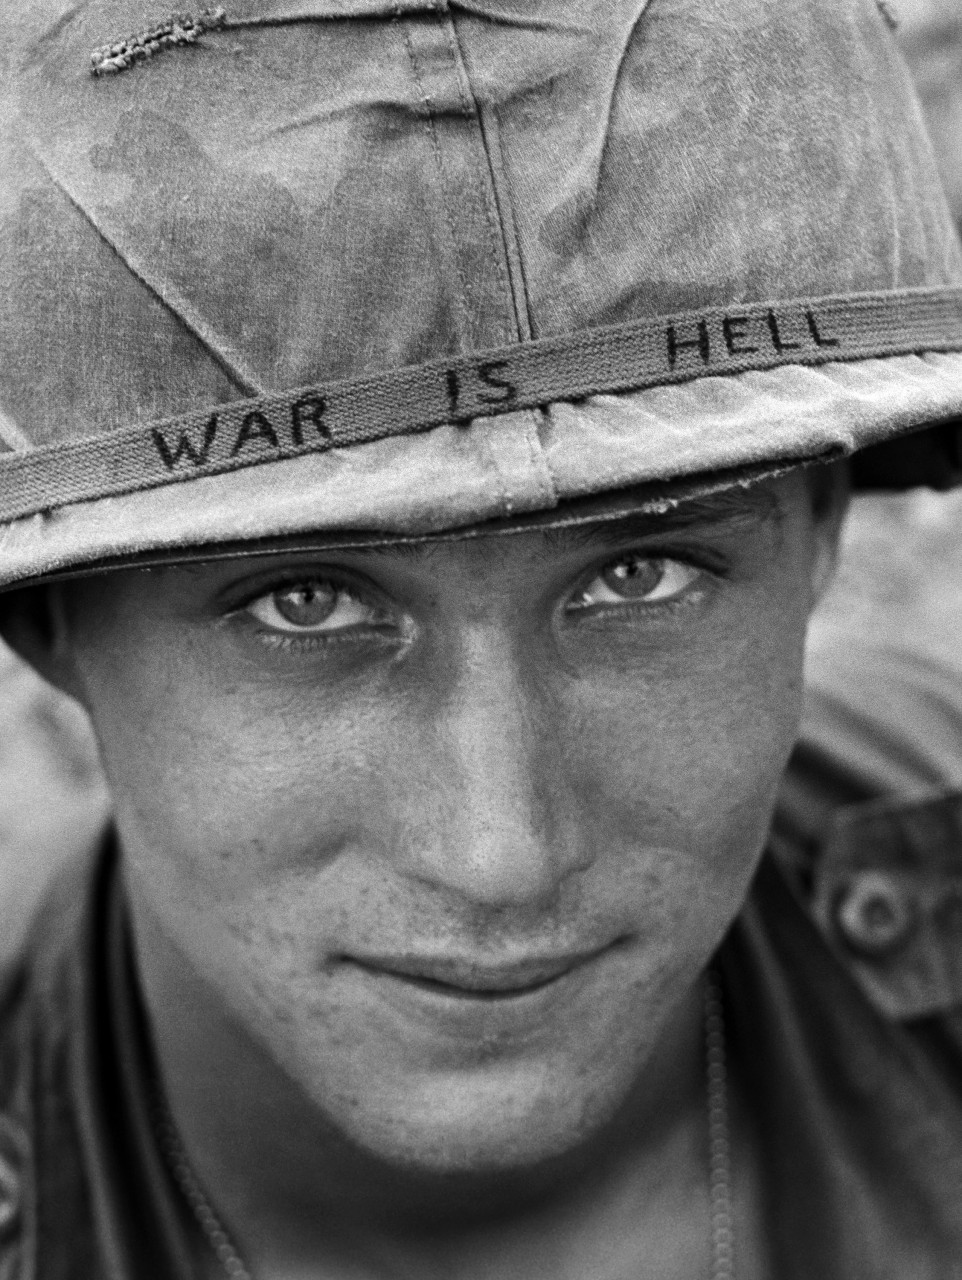 An unidentified American soldier wears a hand-lettered slogan on his helmet, June 1965. The soldier was serving with the 173rd Airborne Brigade on defense duty at the Phuoc Vinh airfield. (Horst Faas/AP)